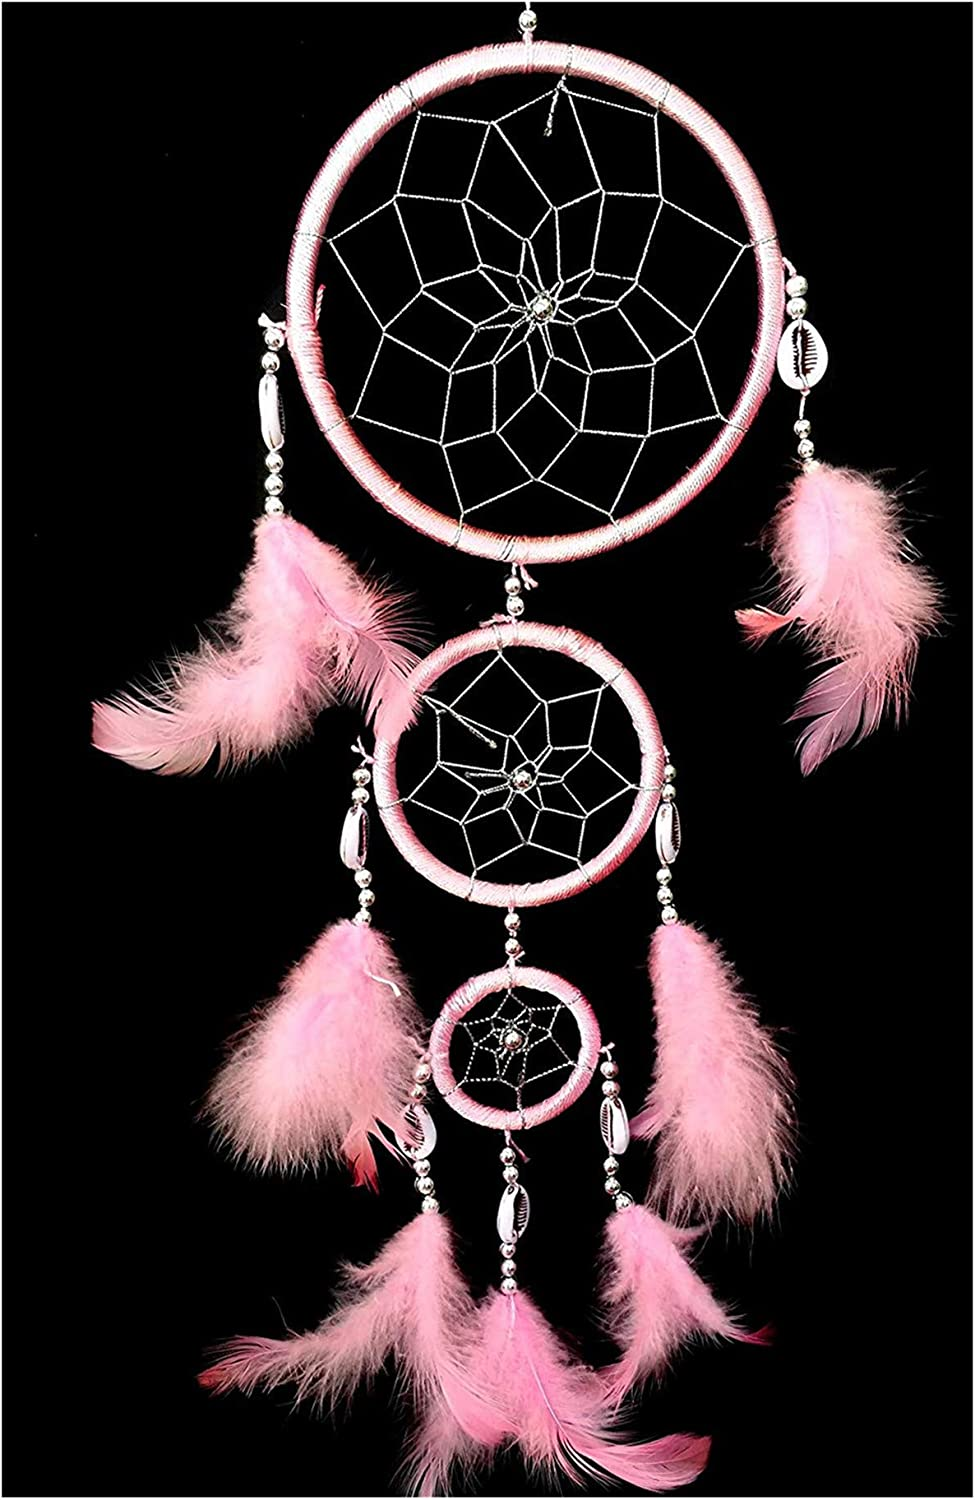 Pink Betterdecor Handmade Pink Dream Catcher with Feathers Wall Hanging Ornament with a Gift Bag